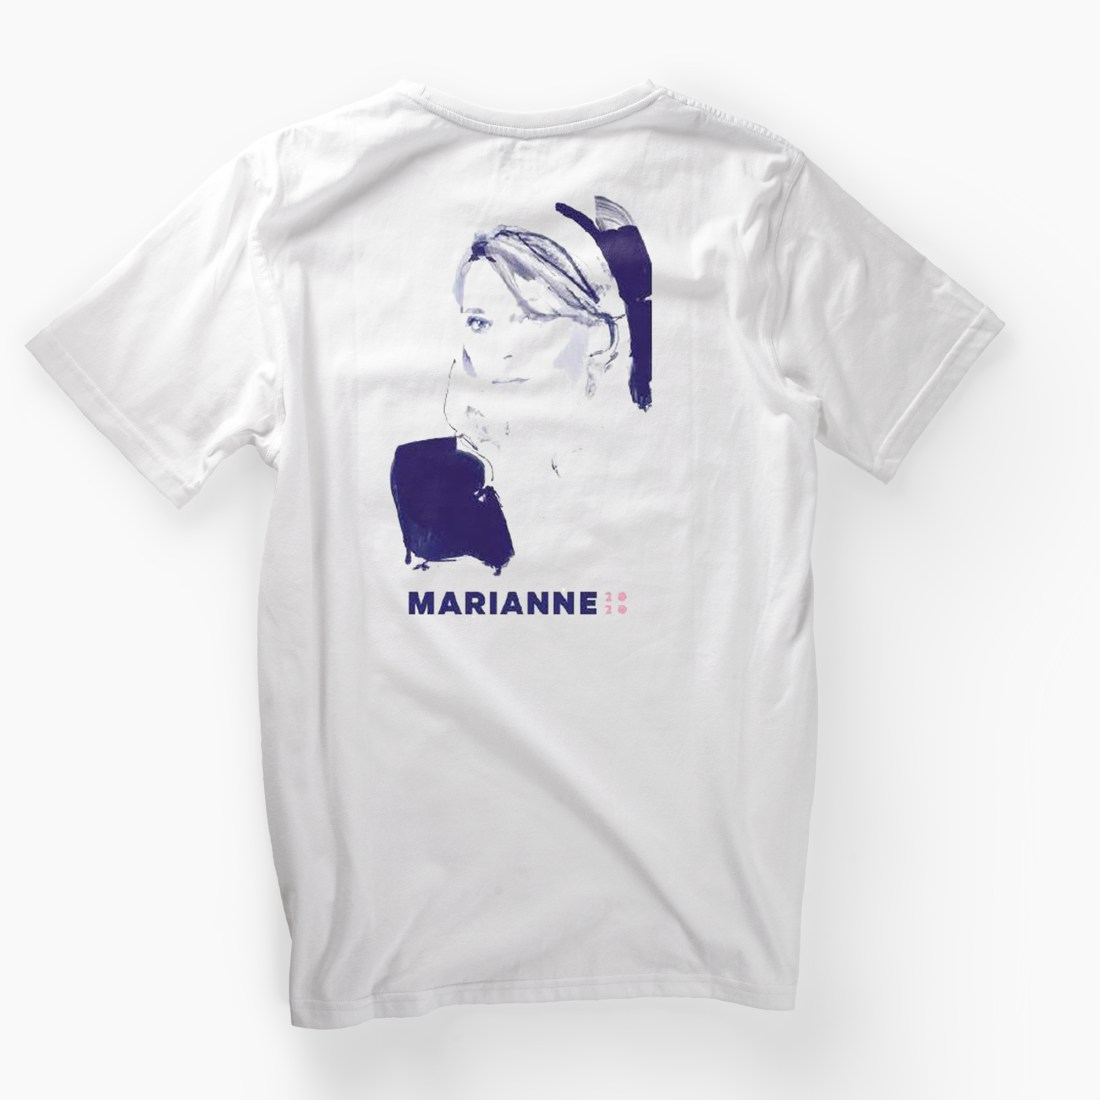 Marianne Williamson T-Shirt by David Downton (marianne2020.com)